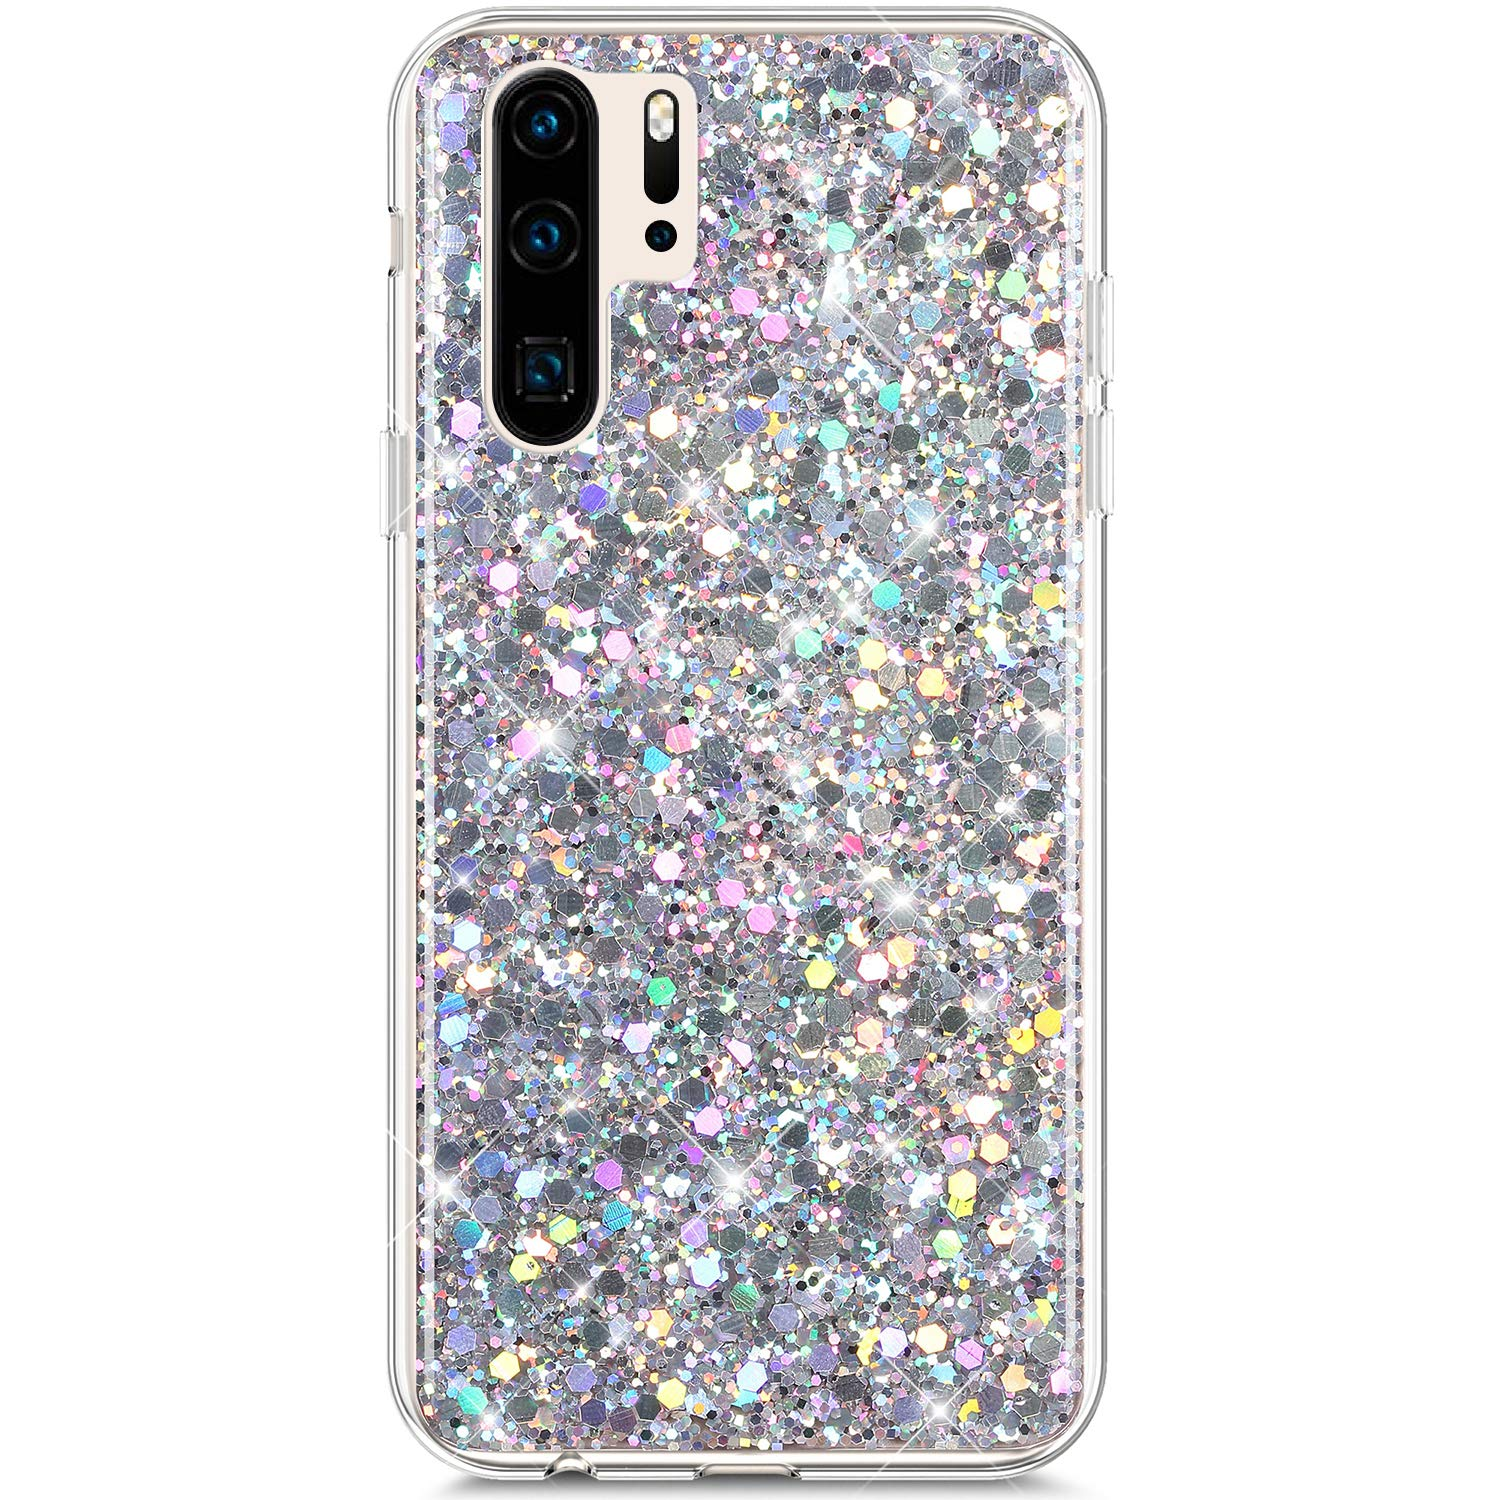 Compatible With Huawei P30 Pro Case,PHEZEN Girls Women Bling Shiny Glitter Sparkle TPU Case Flexible Rubber Silicone Case Full Body Protective Phone Case Cover For Huawei P30 Pro Purple